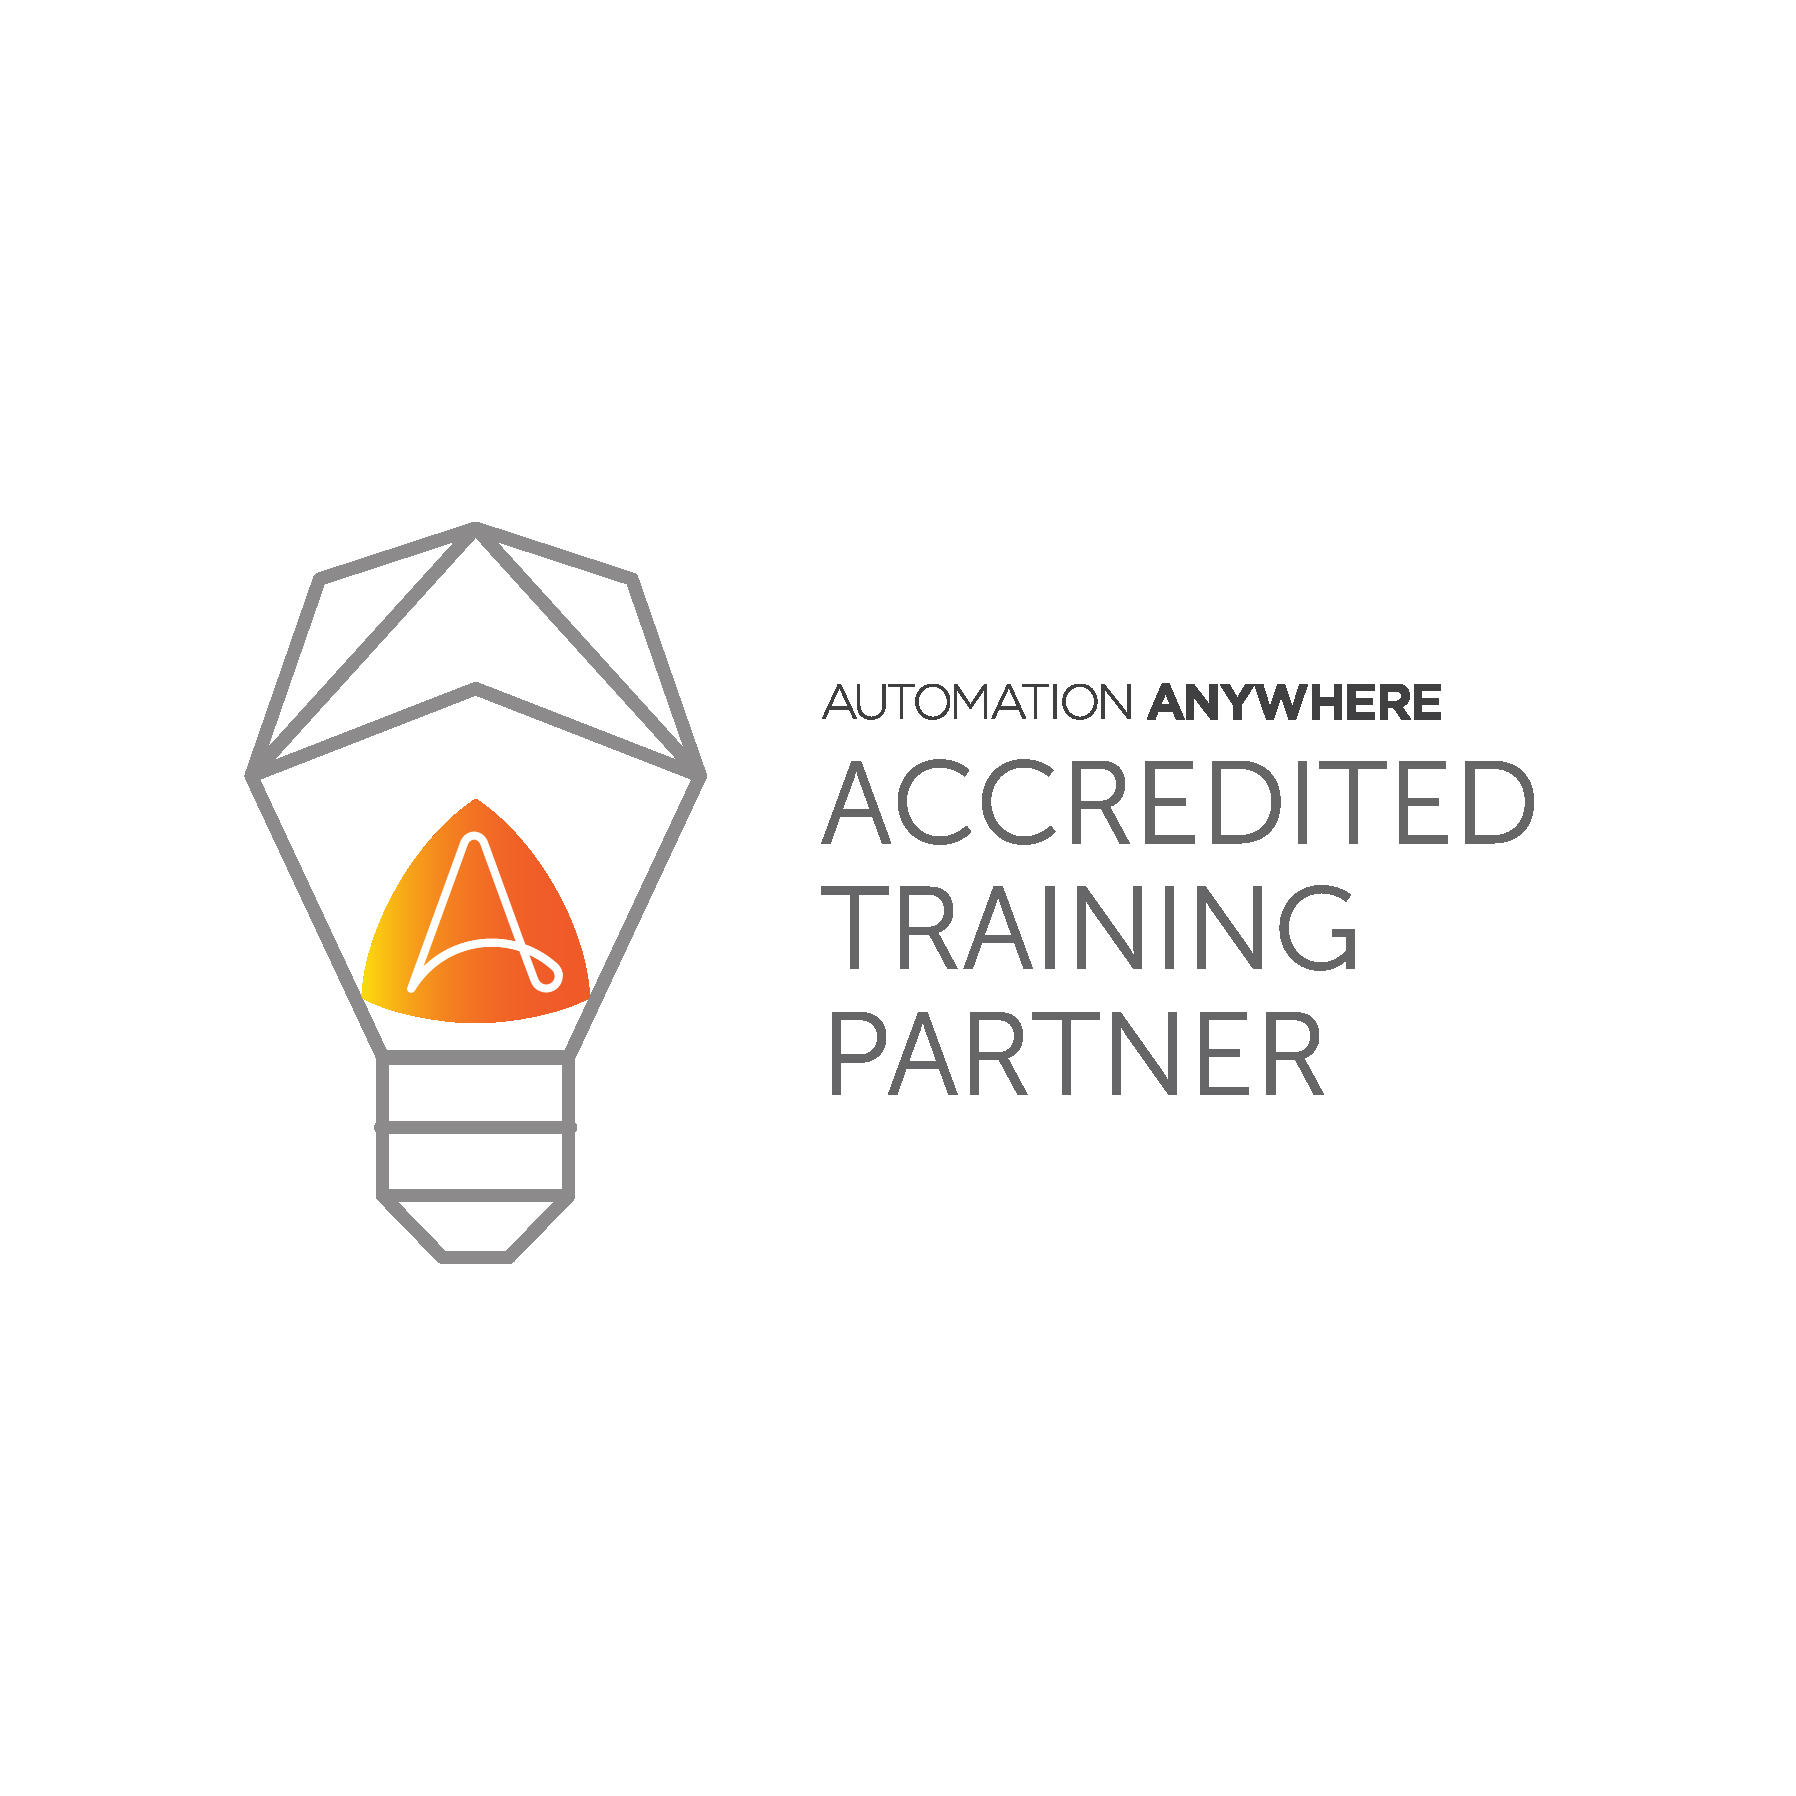 The RPA Academy Announces Its Appointment as an Accredited